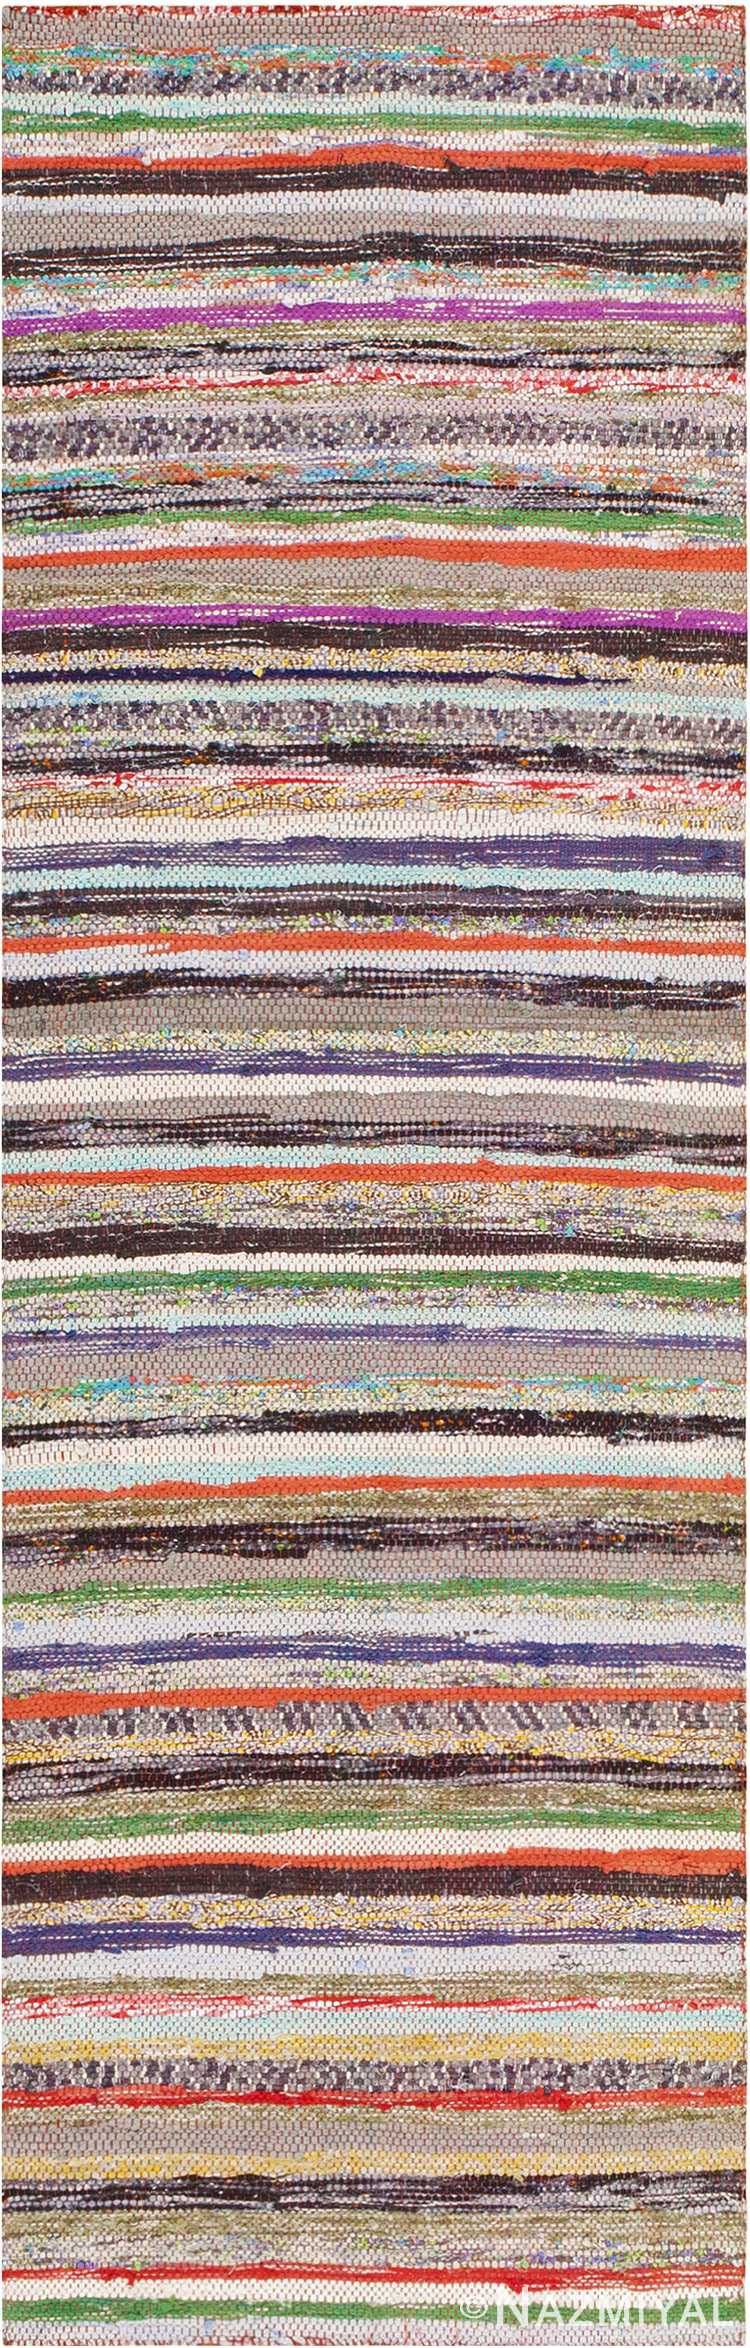 Small Colorful Striped Vintage Swedish Rag Rug #46670 by Nazmiyal Antique Rugs